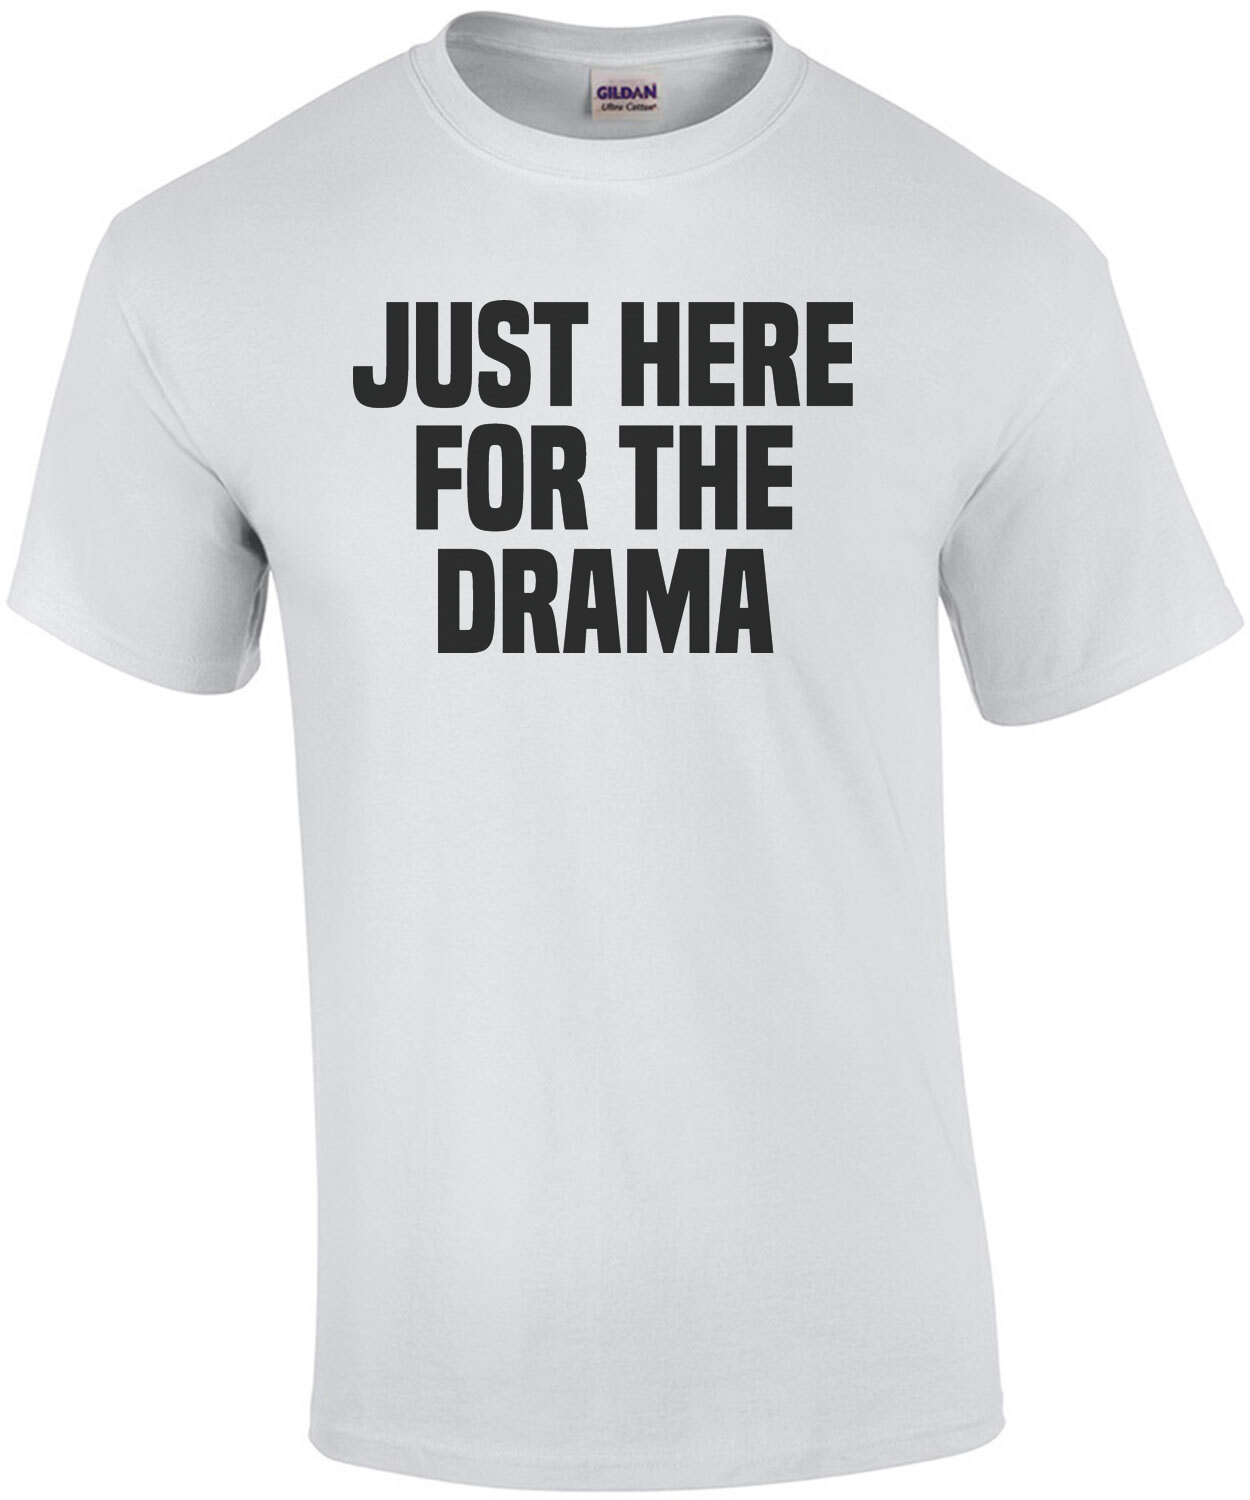 Just here for the drama - funny sarcastic t-shirt